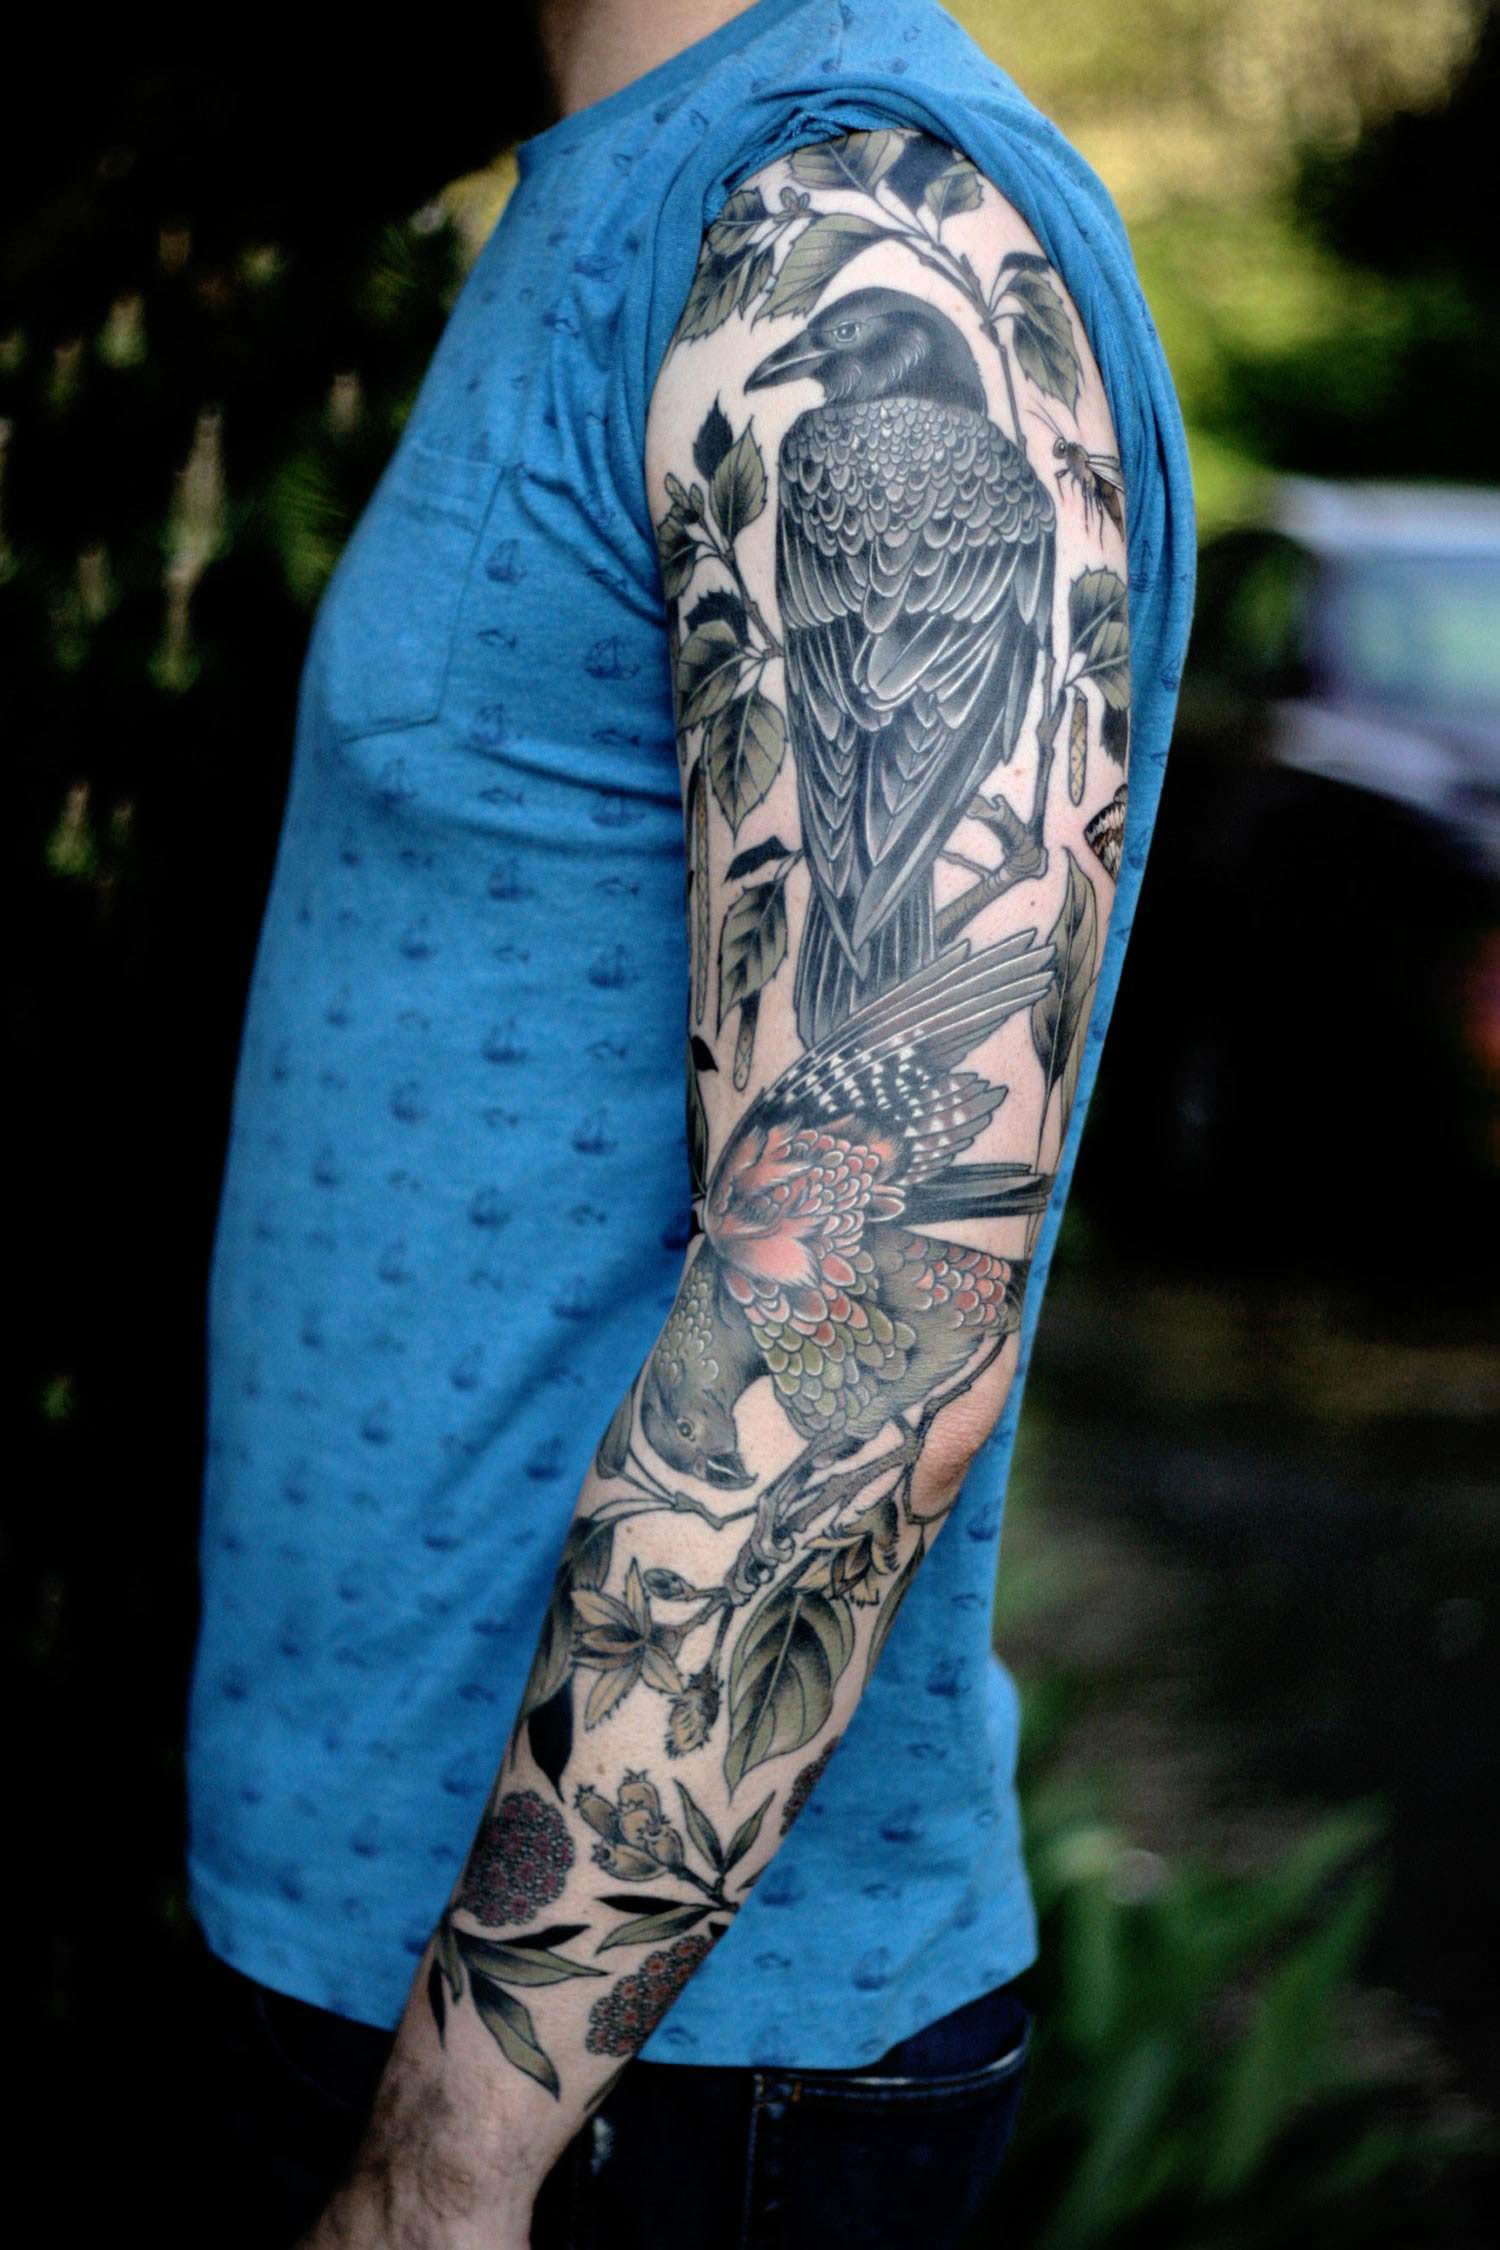 full tattoo sleeve, birds and plants